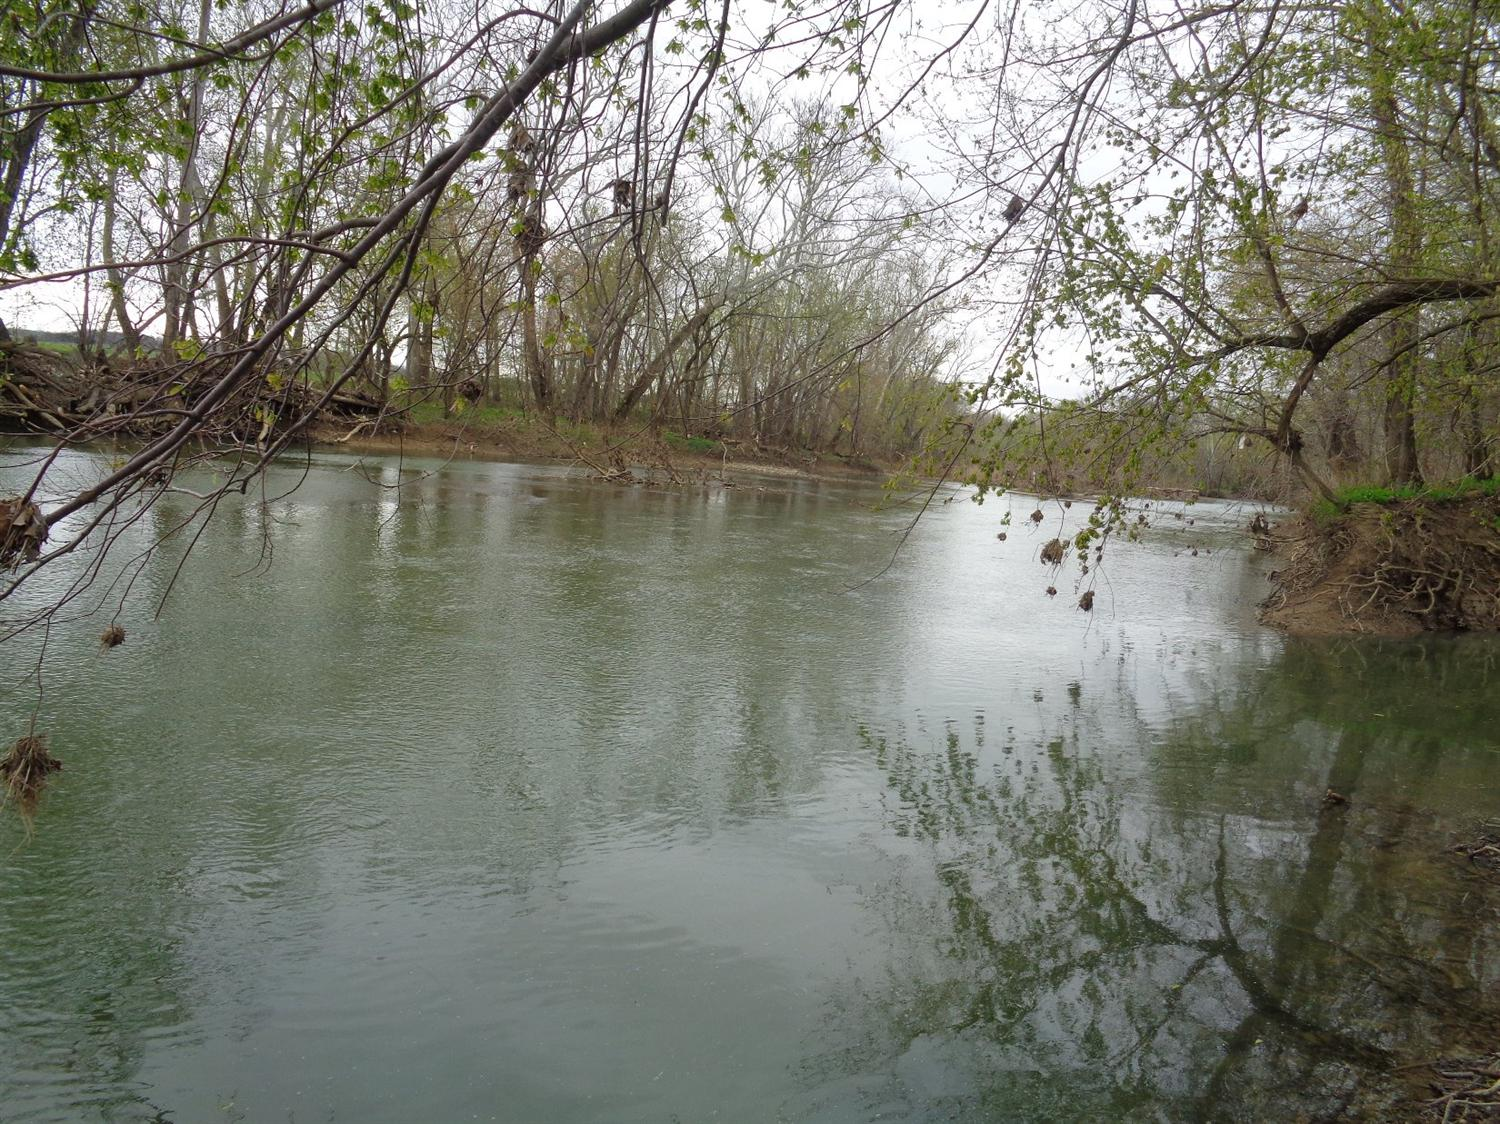 Image of Acreage for Sale near Falmouth, Kentucky, in Pendleton county: 92.00 acres